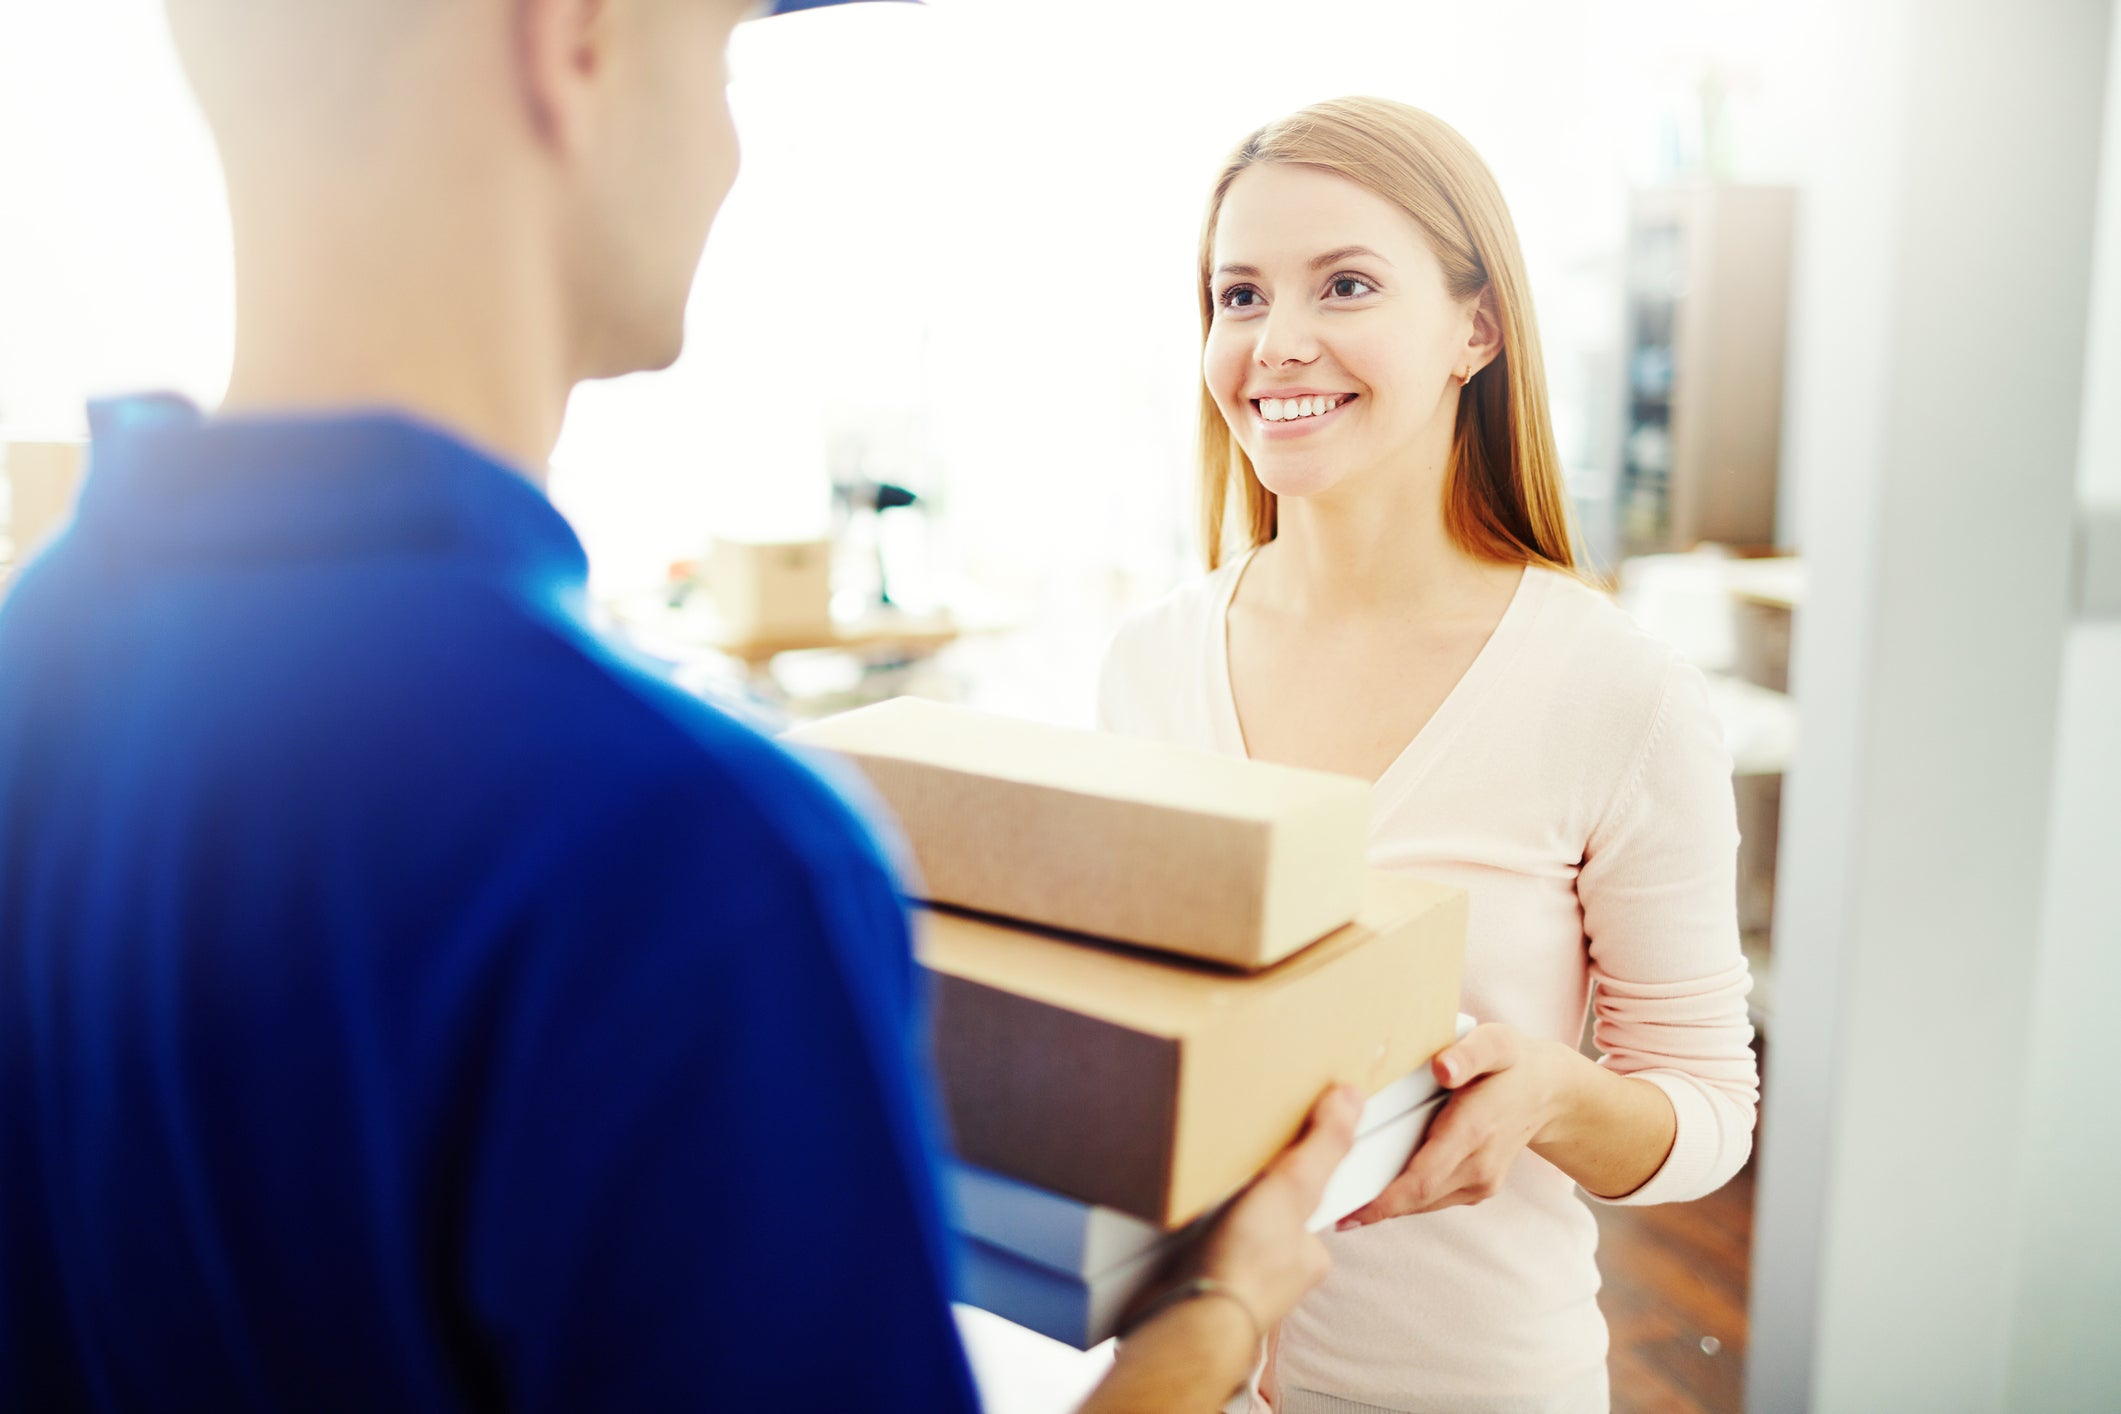 A woman accepts boxes from a deliveryman